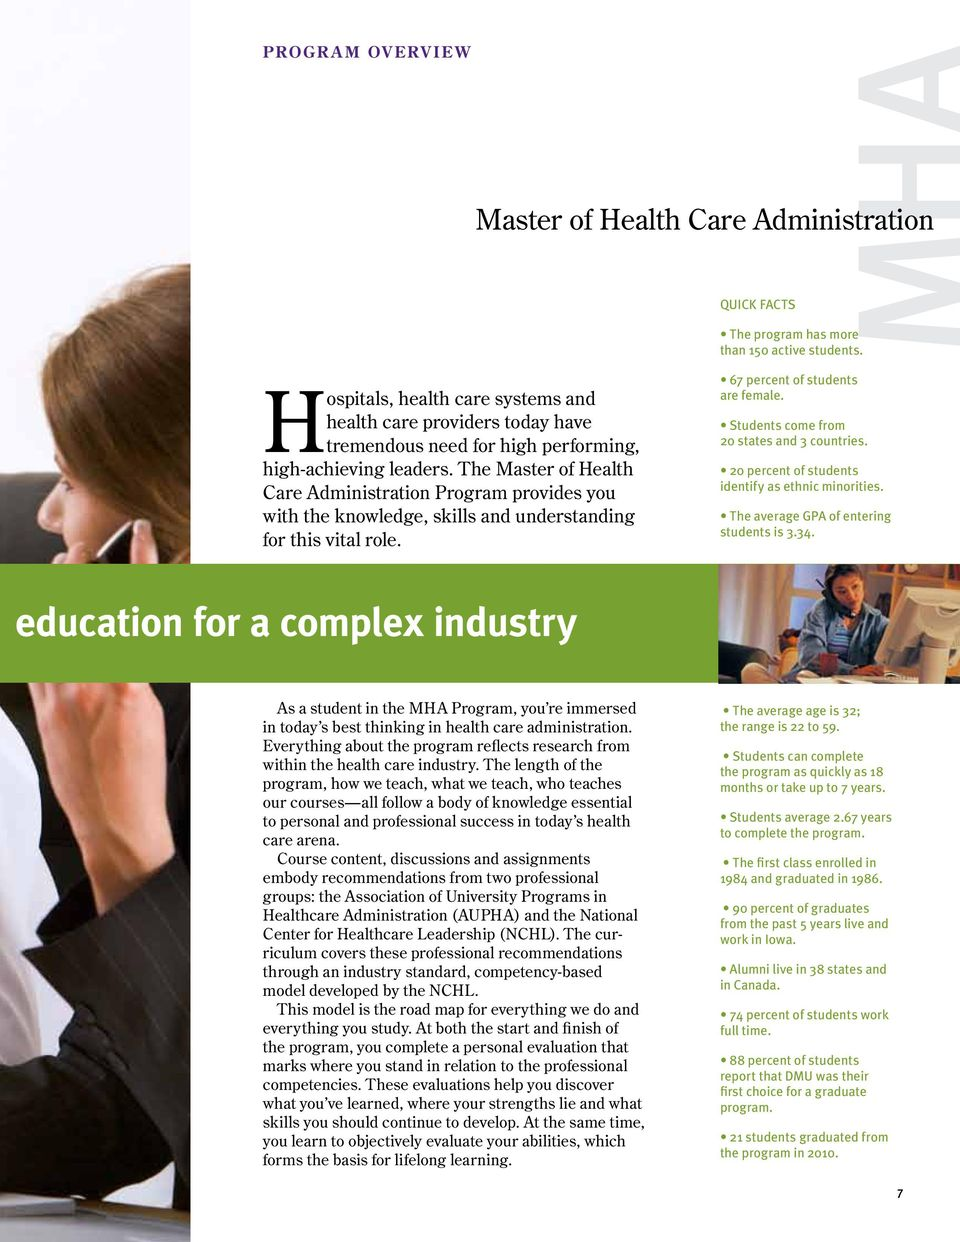 The Master of Health Care Administration Program provides you with the knowledge, skills and understanding for this vital role. 67 percent of students are female.